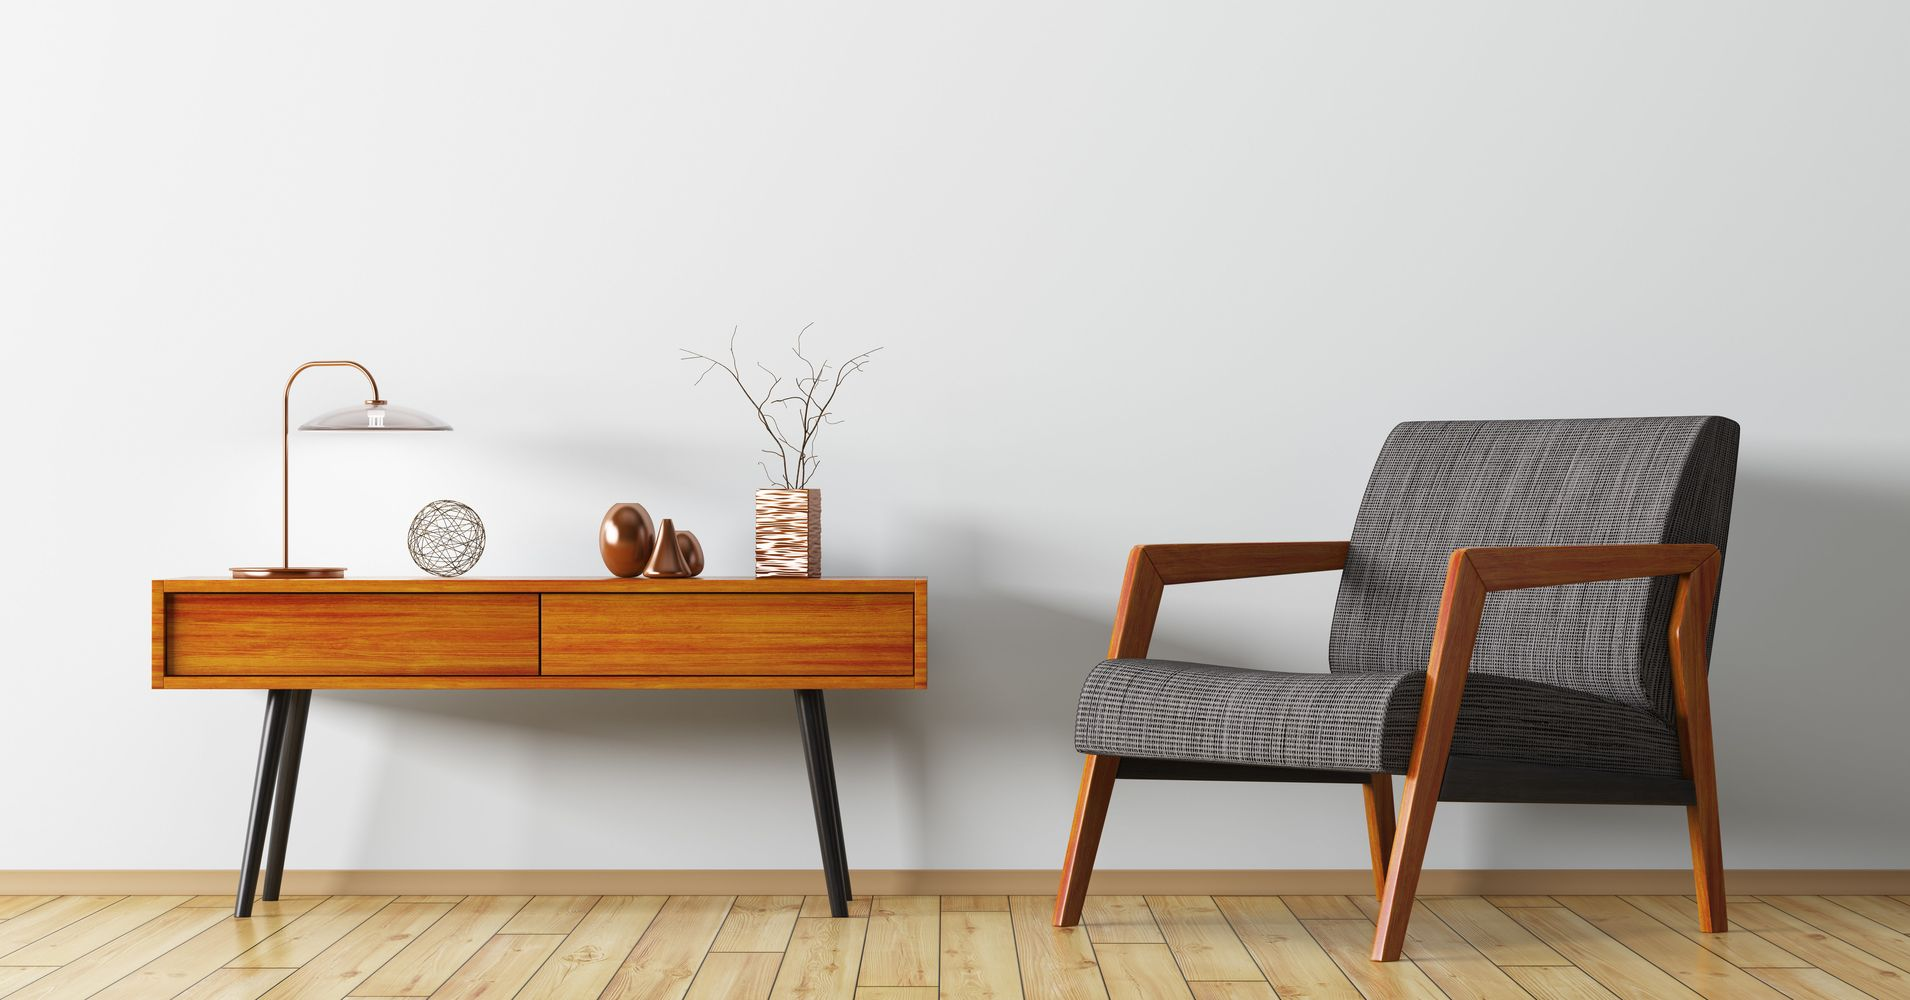 The best sites for affordable mid century modern furniture and decor in one exhaustive list huffpost life